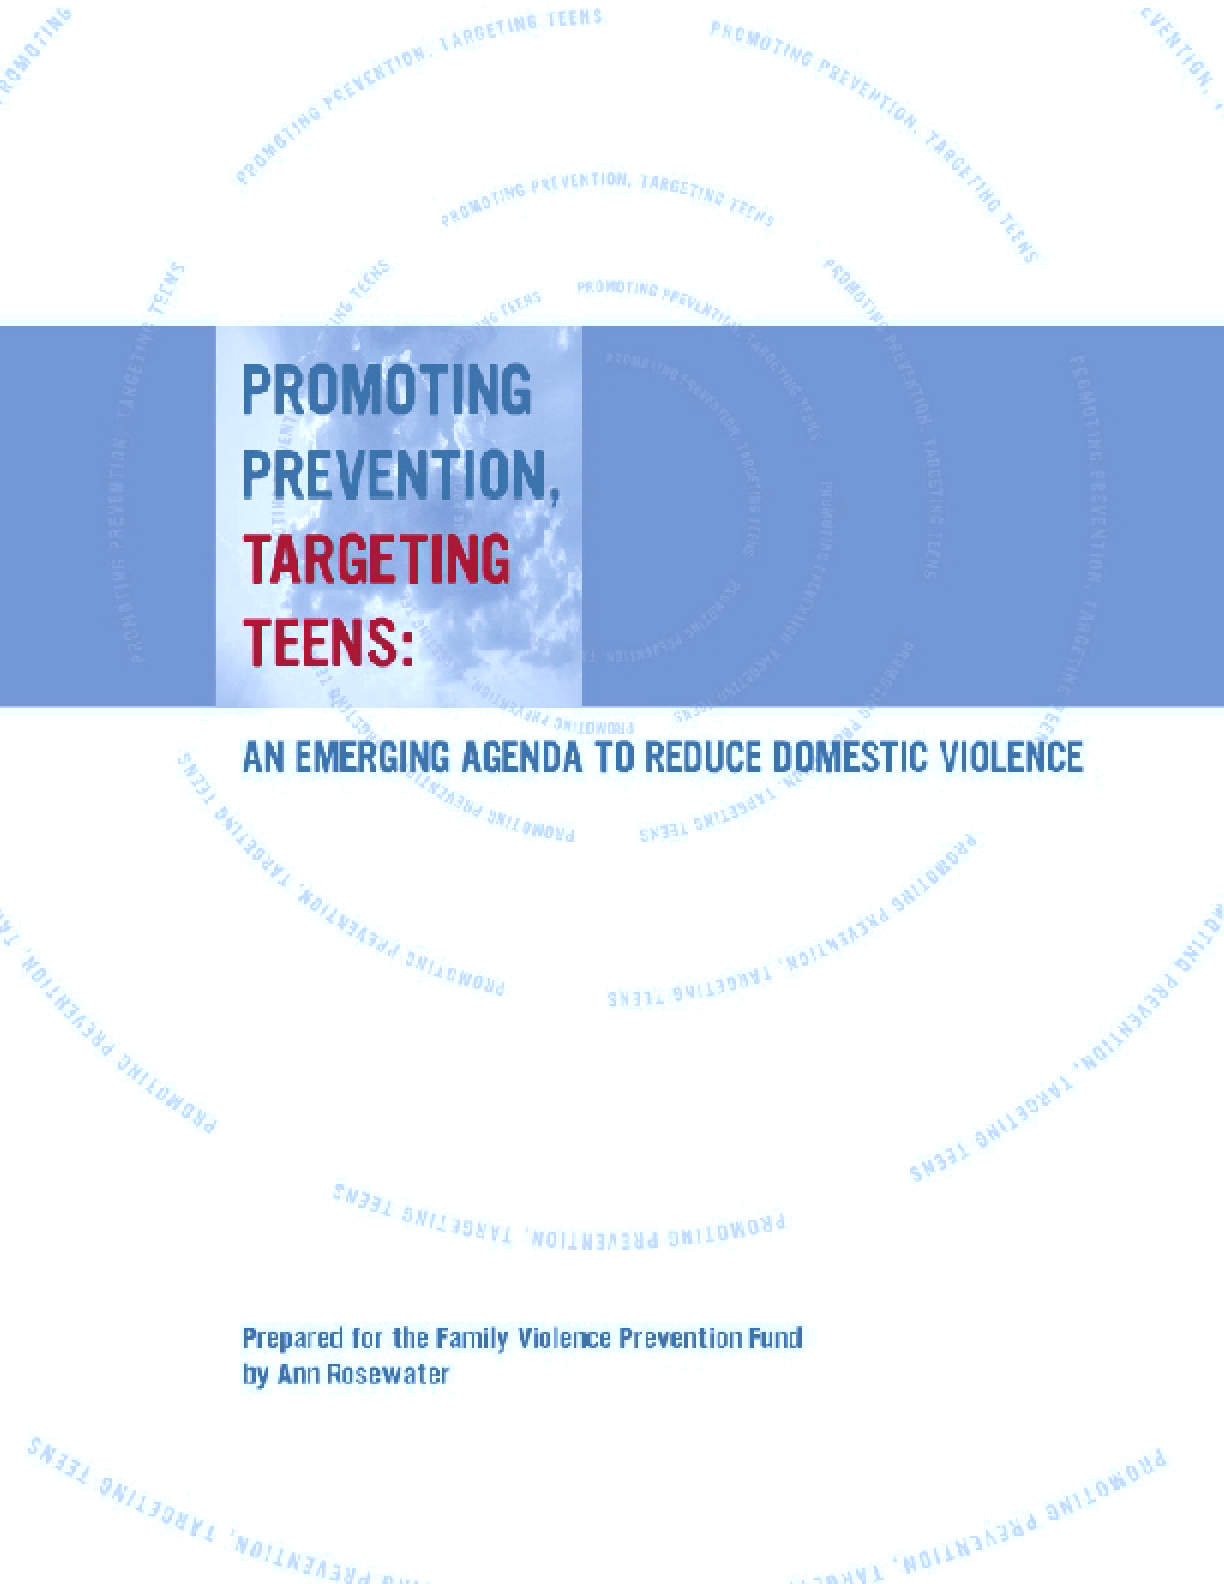 Promoting Prevention, Targeting Teens: An Emerging Agenda to Reduce Domestic Violence